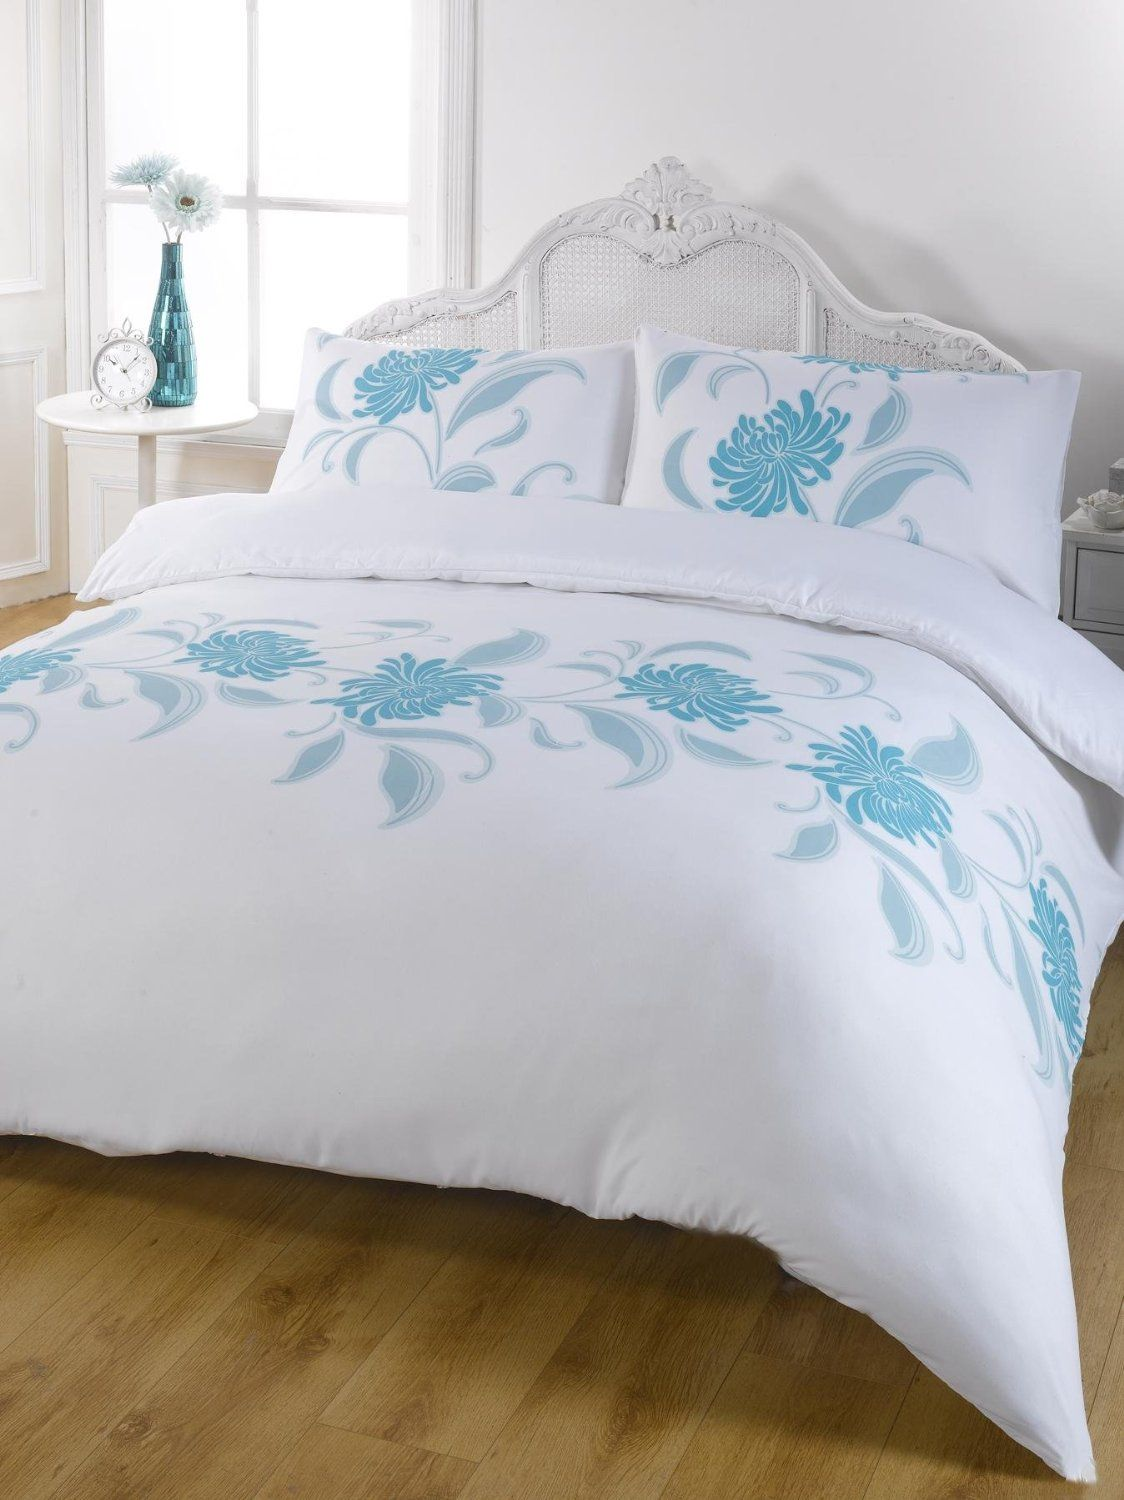 White Single Quilt Cover Exquisite Teal Blue White Modern Floral Single Duvet Quilt